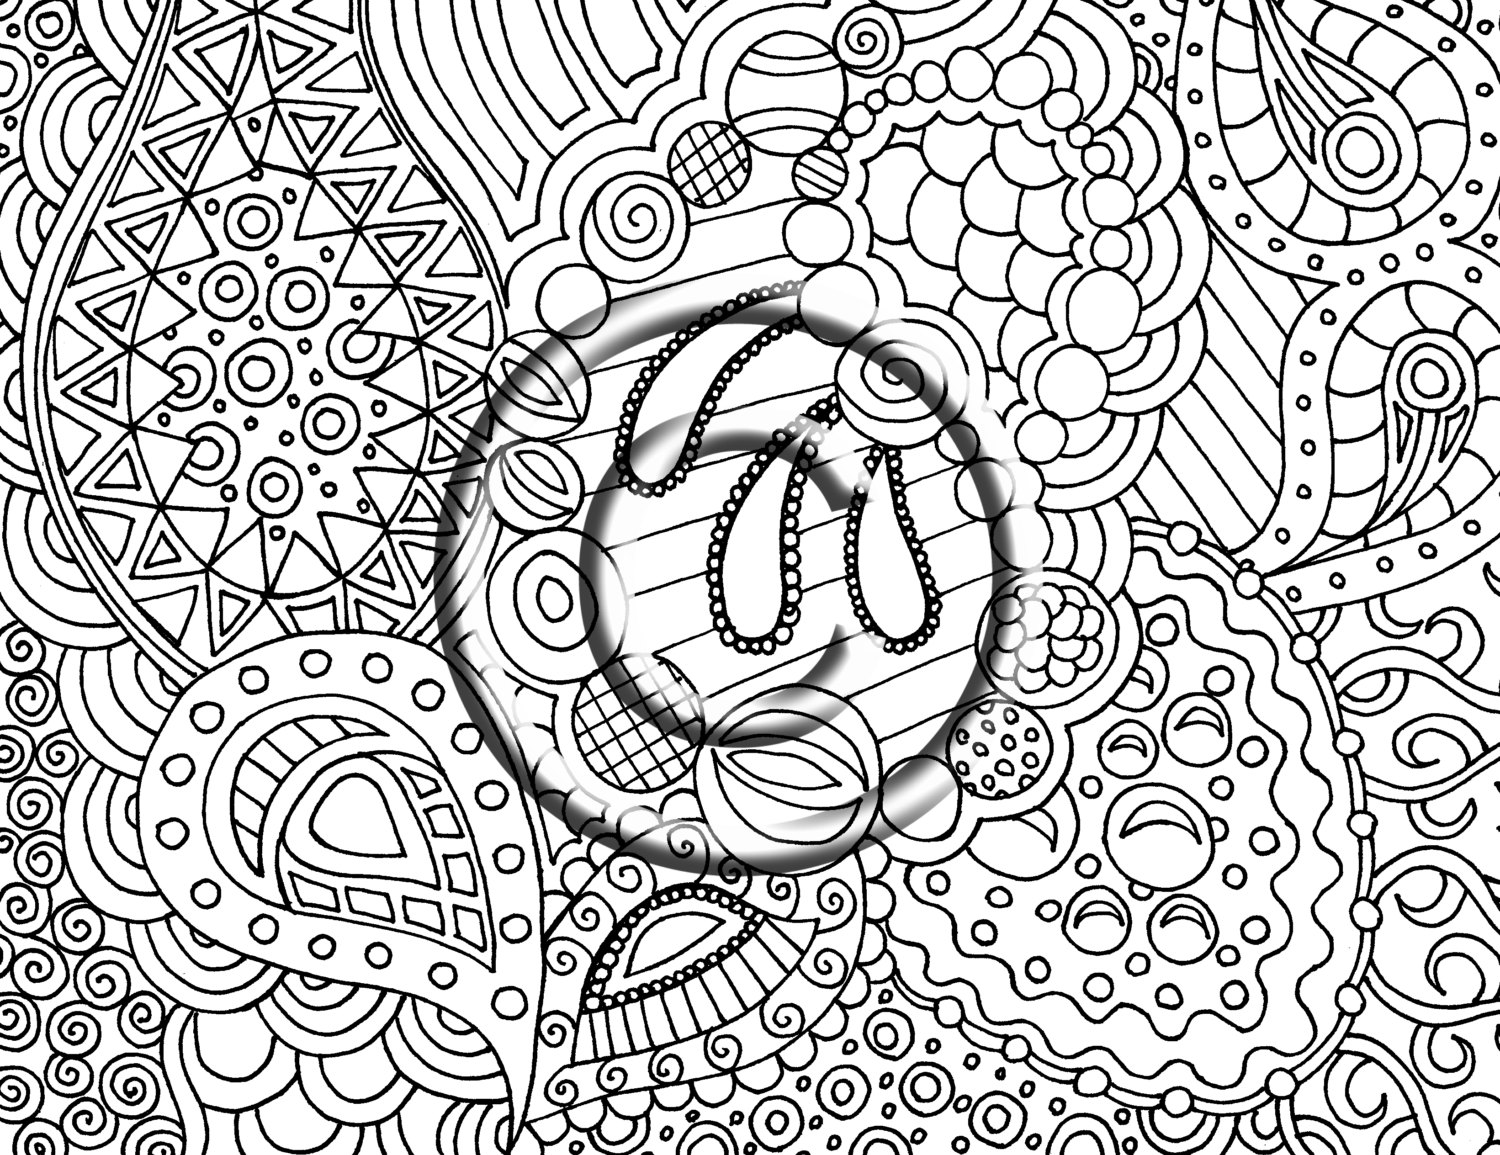 Psychedelic coloring pages to download